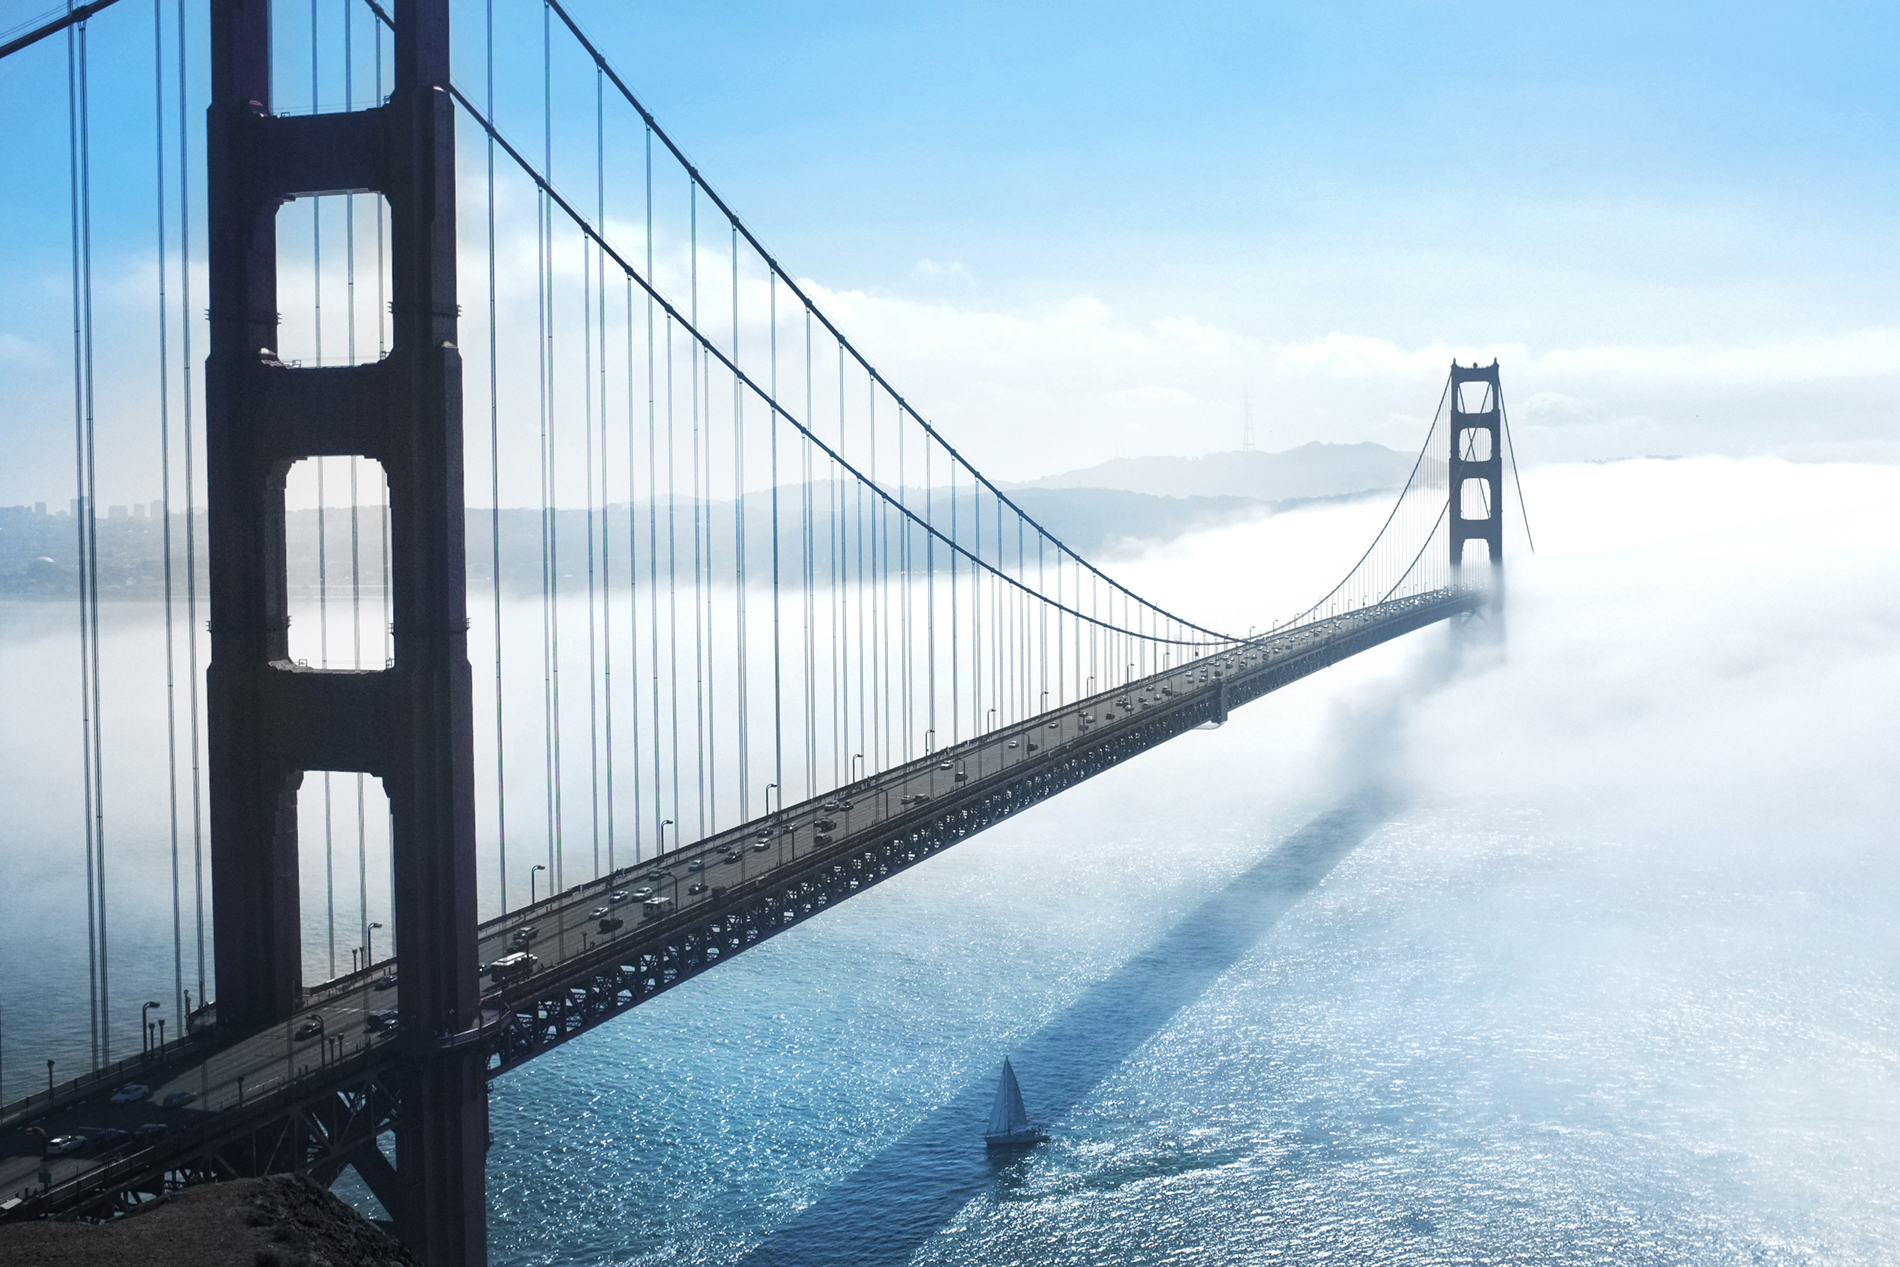 Suspension bridge with blue sky and scenery 52212